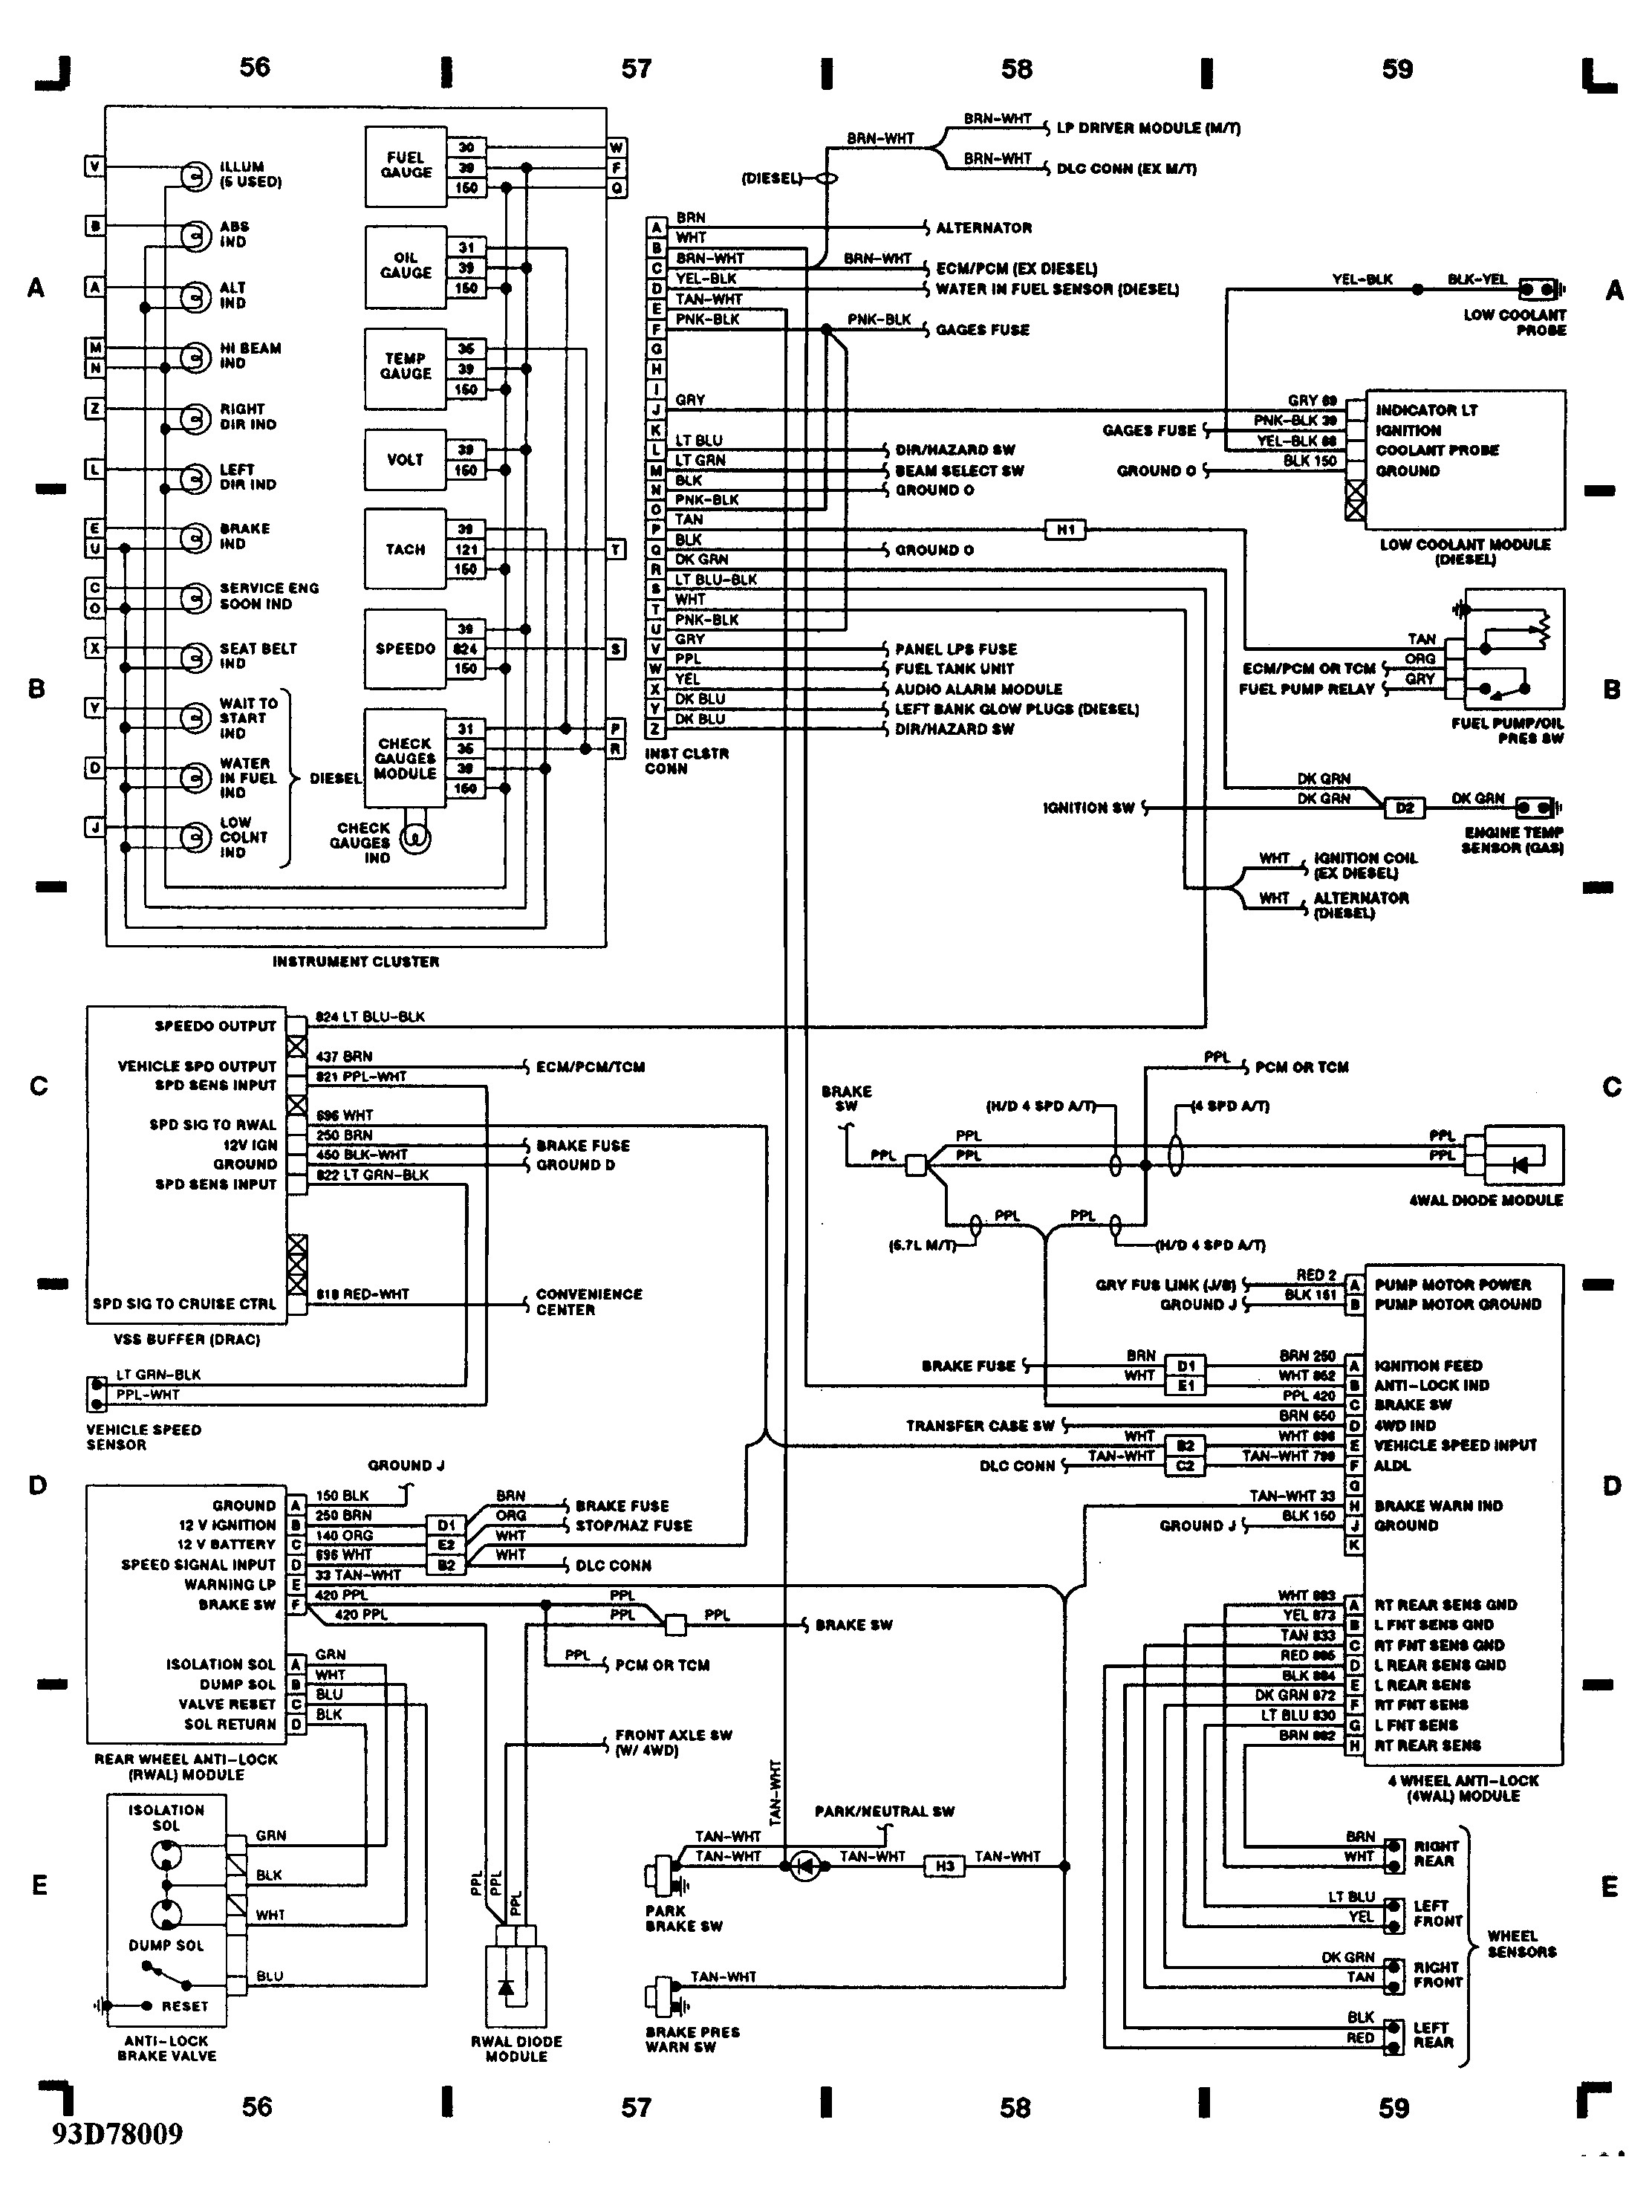 Diagram  2006 Chevrolet Silverado Wiring Diagram Full